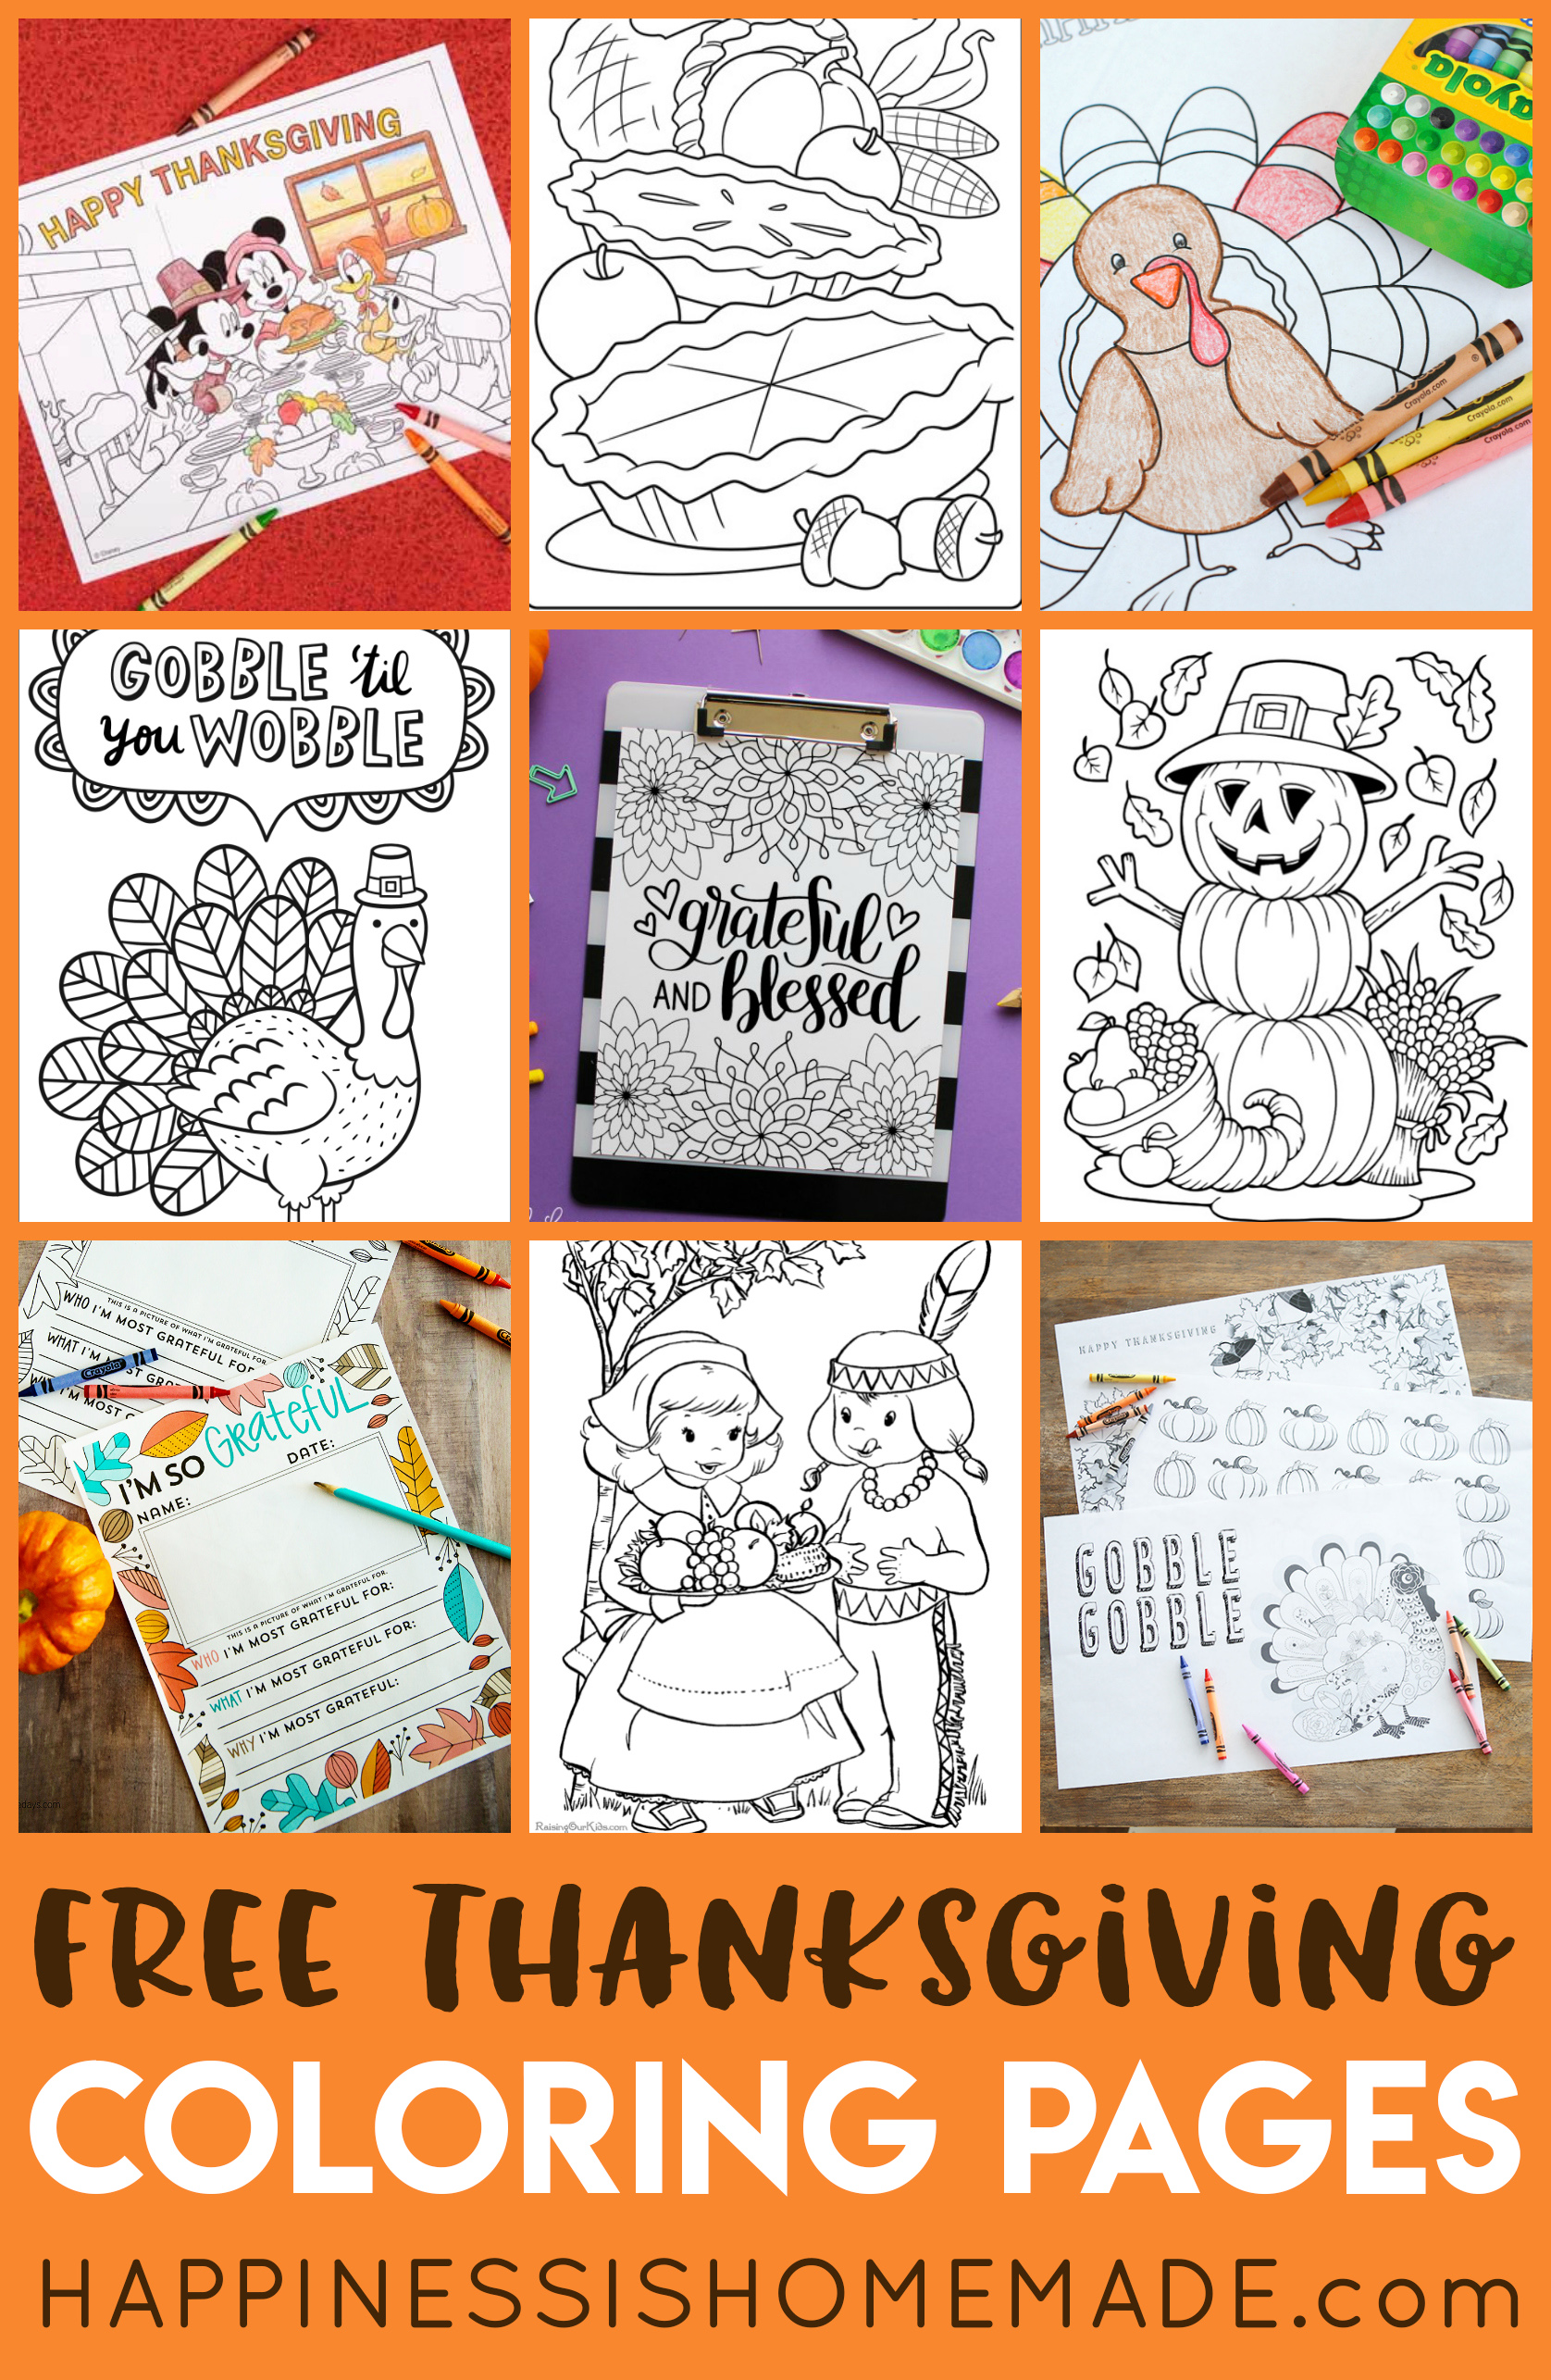 FREE Thanksgiving Coloring Pages For Adults & Kids - Happiness Is